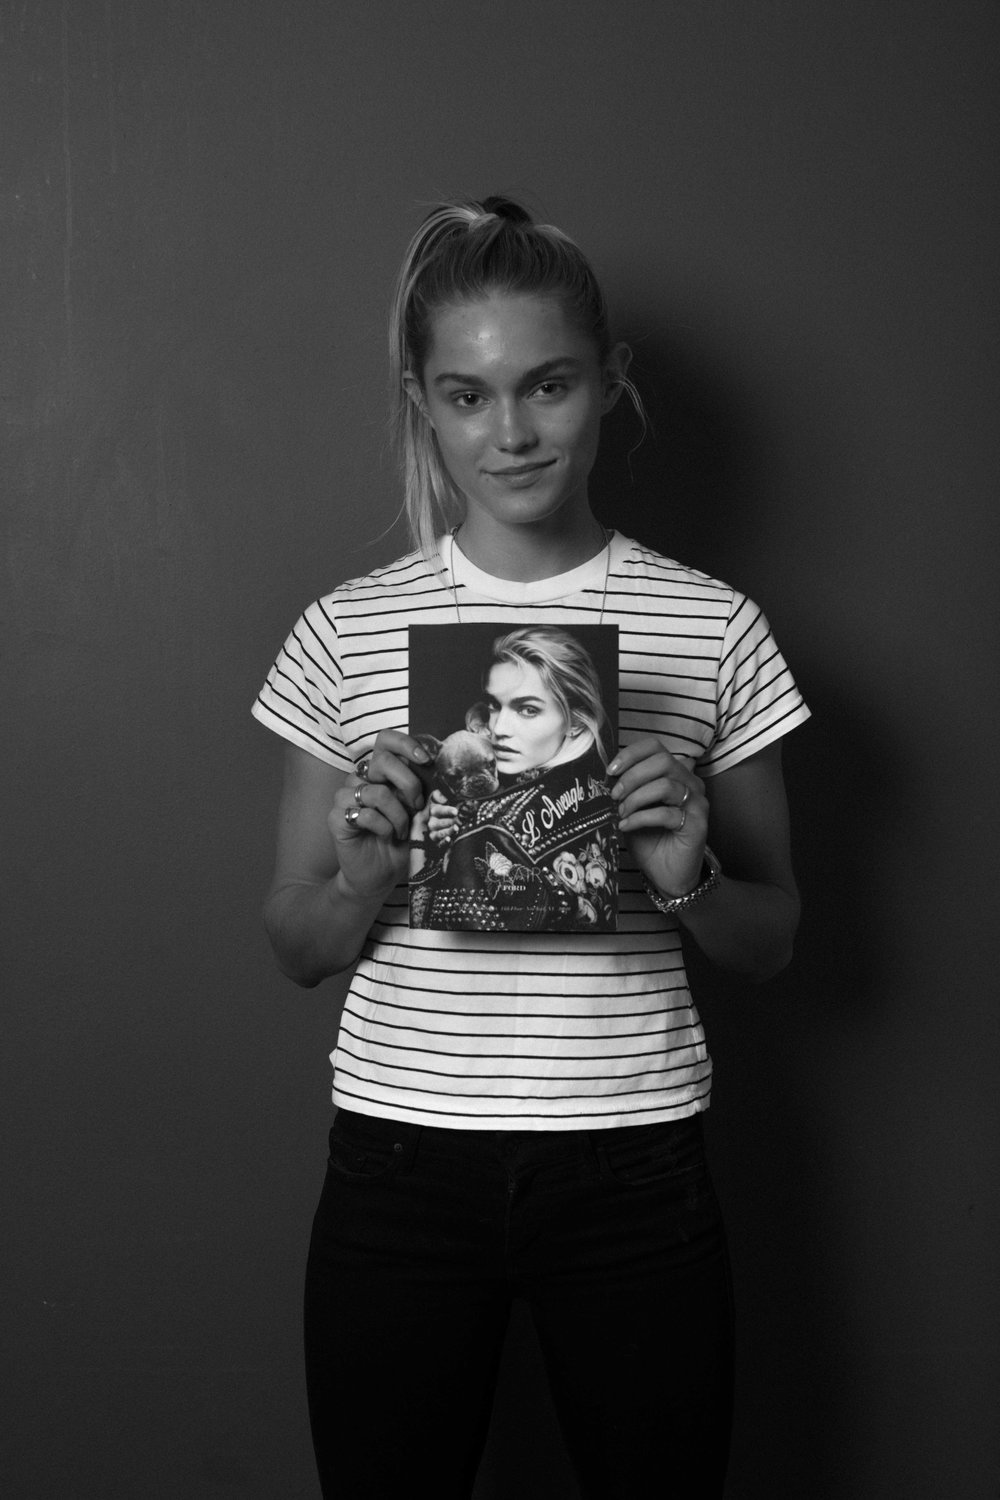 Claire Wustenberg during casting. She was selected her for the lookbook.